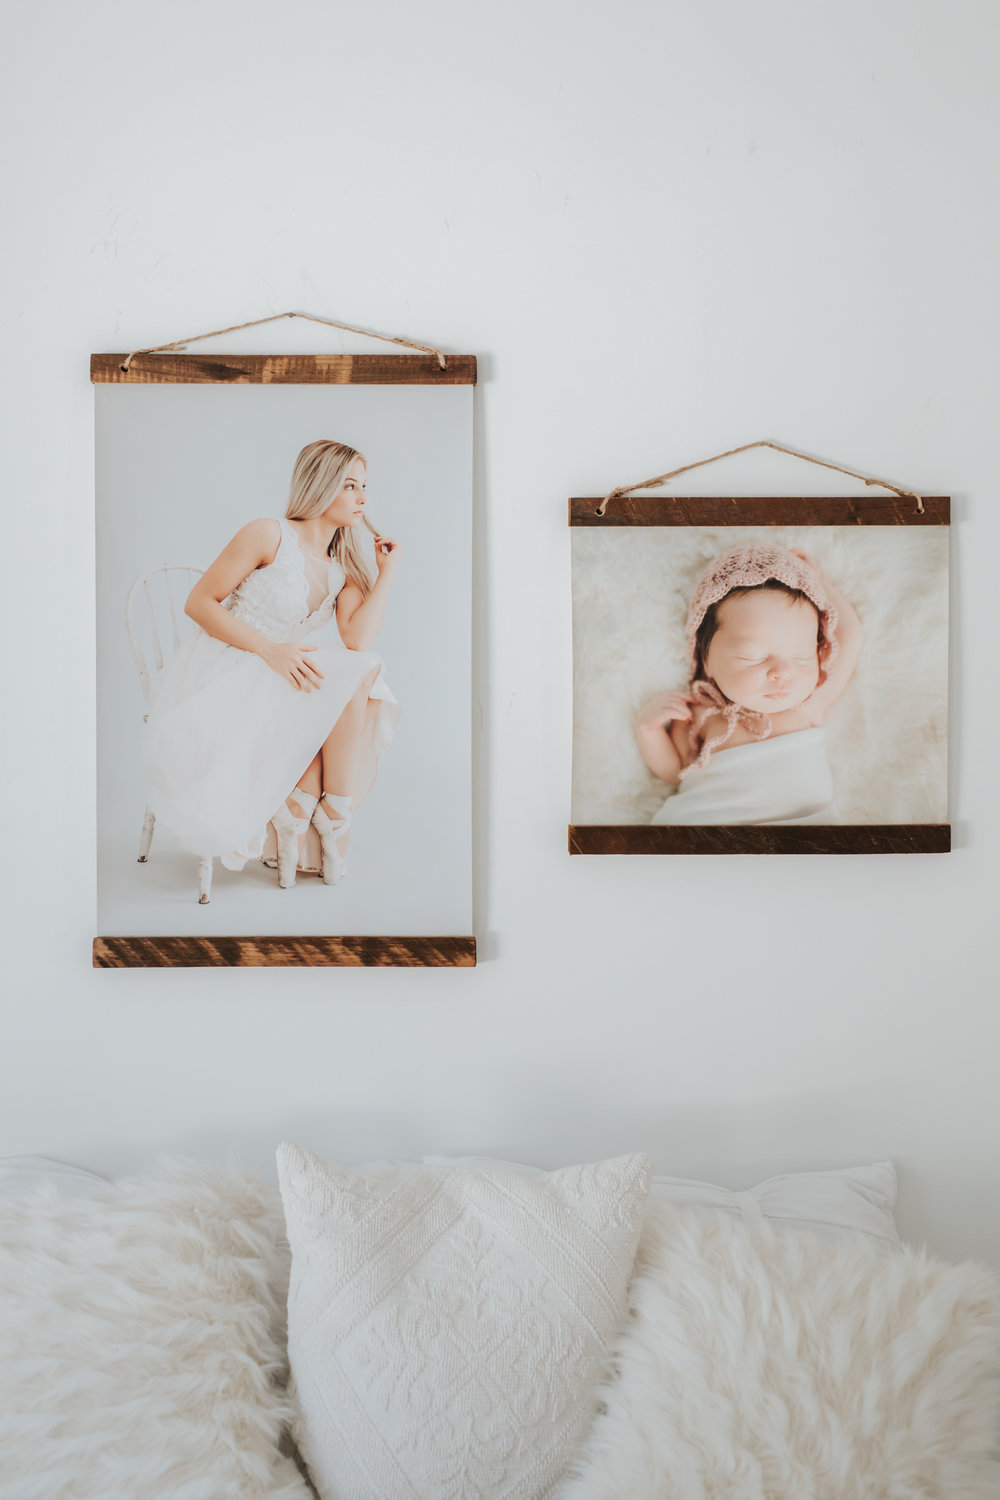 Lagniappe Hanging Canvas   Upgrade to 20x30 for $150  Upgrade to 24x36 for $250